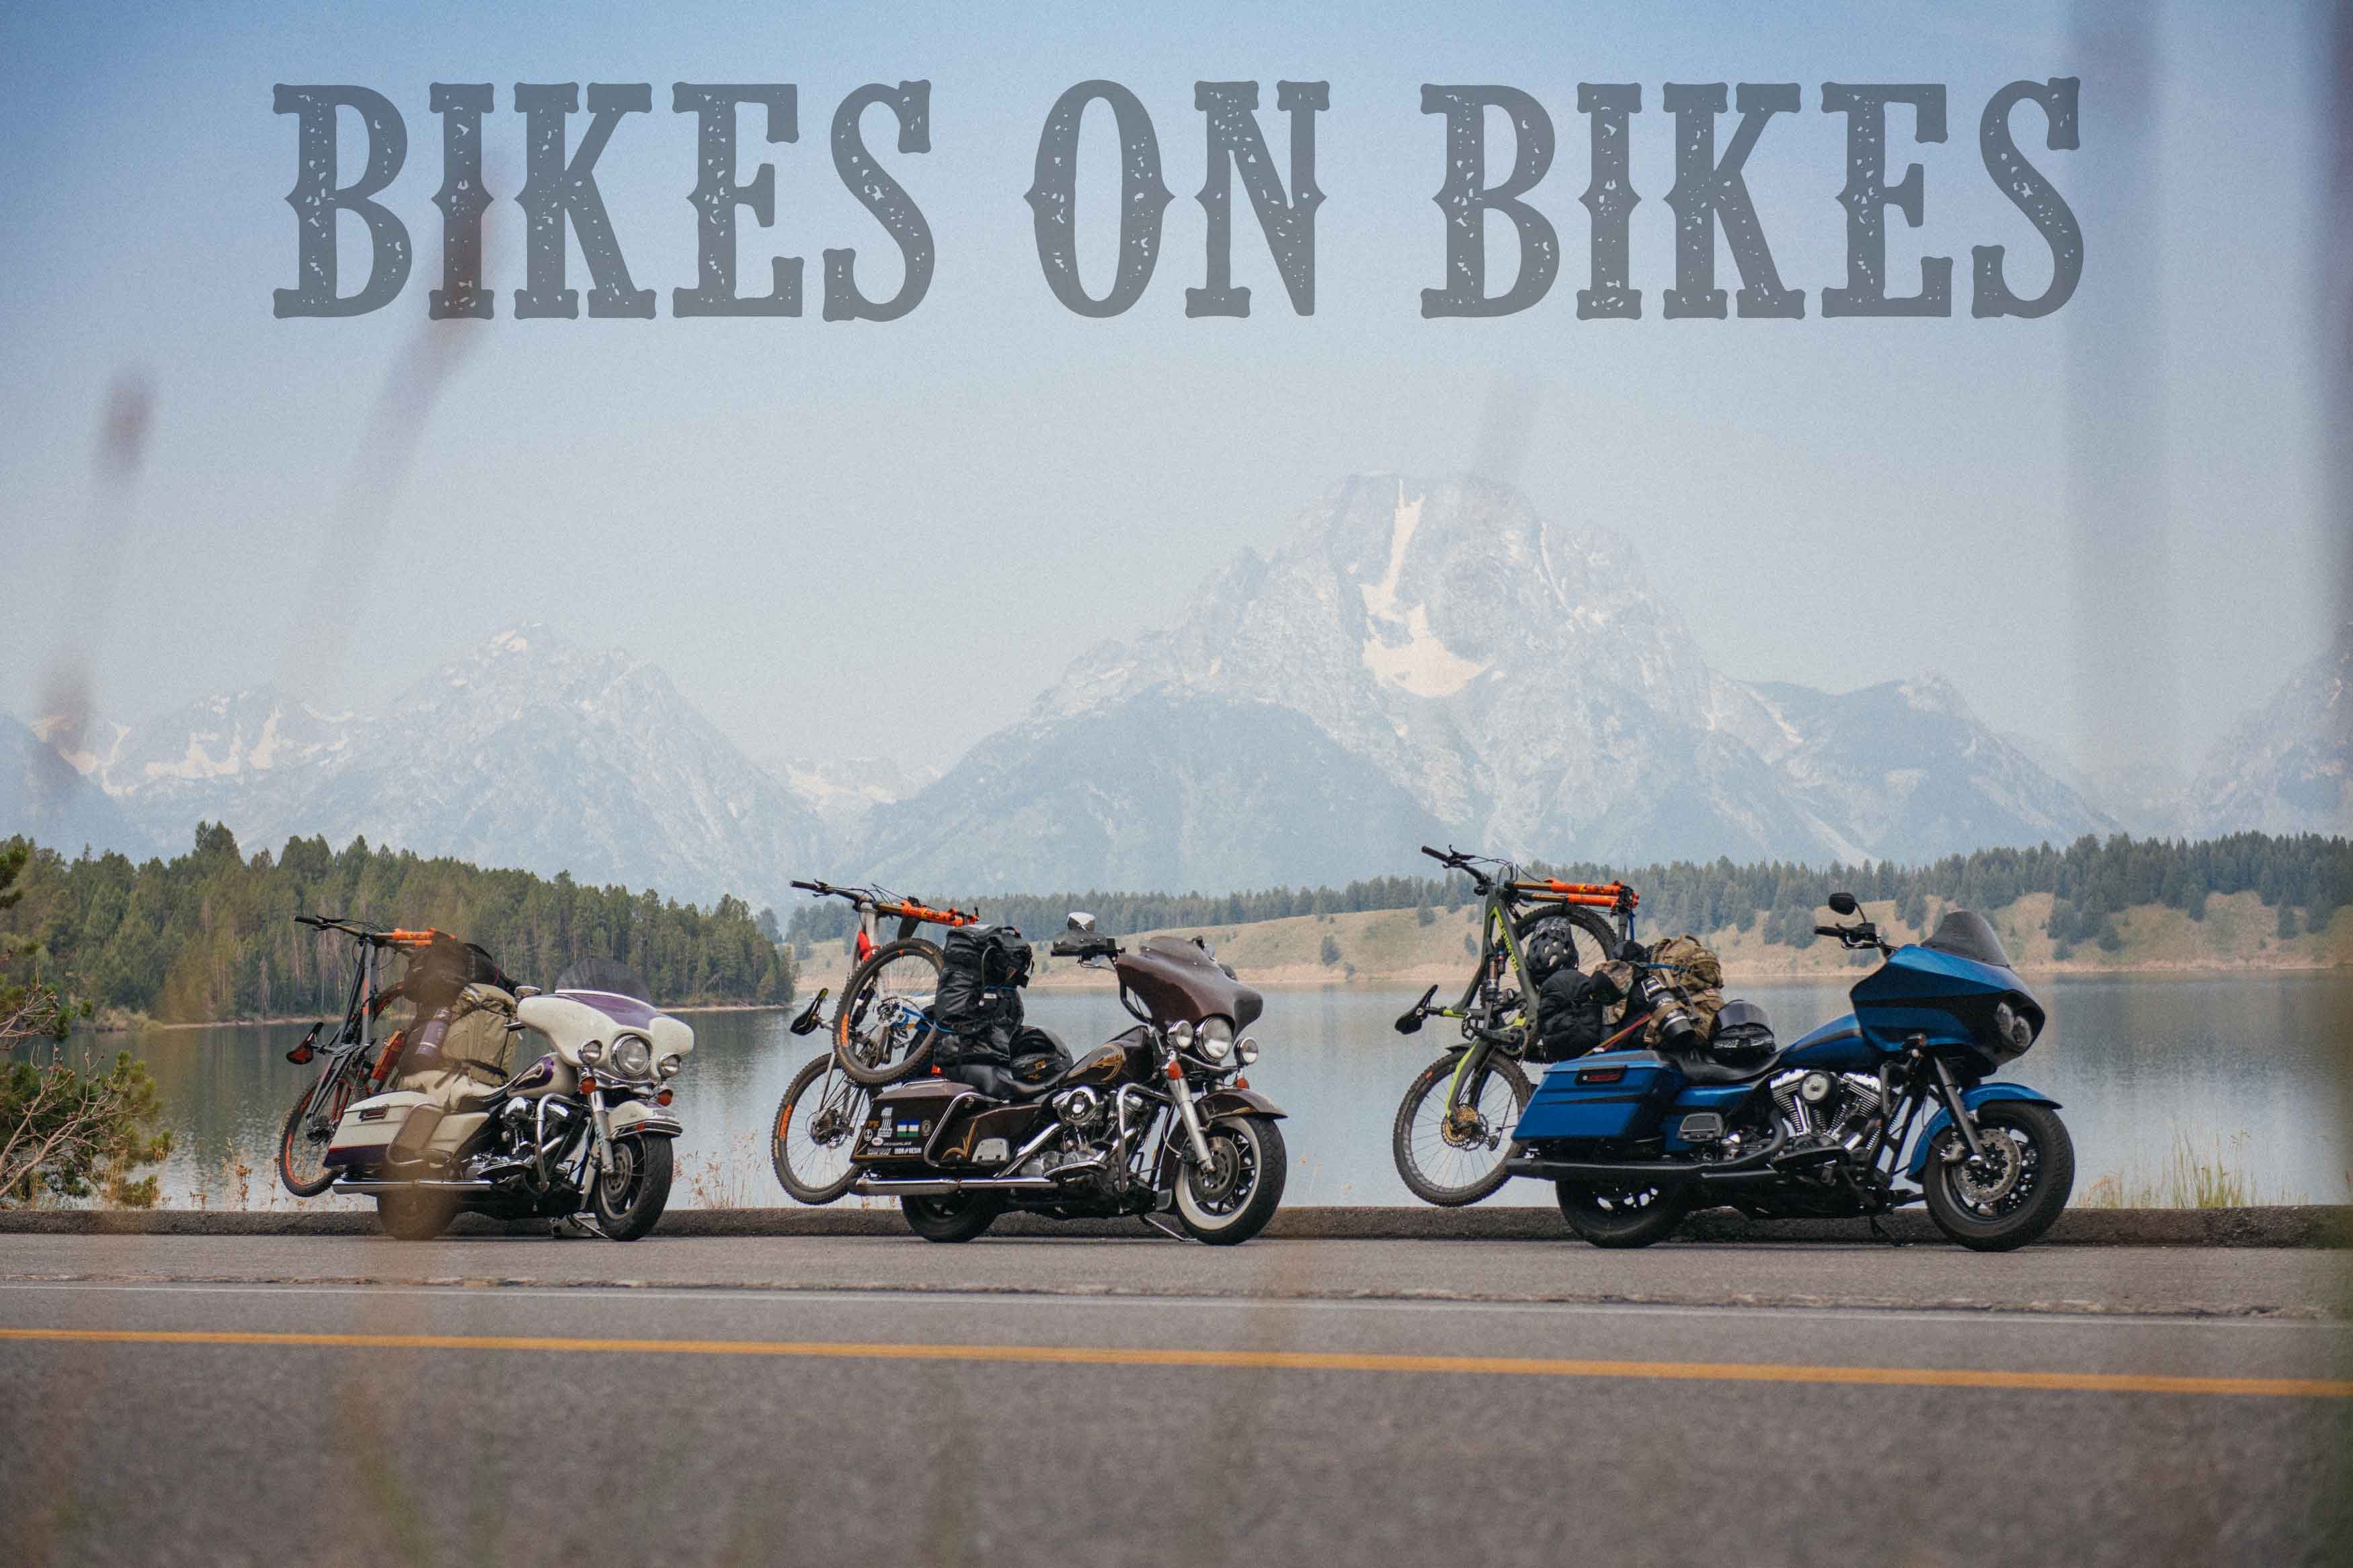 Feature: Bikes on Bikes